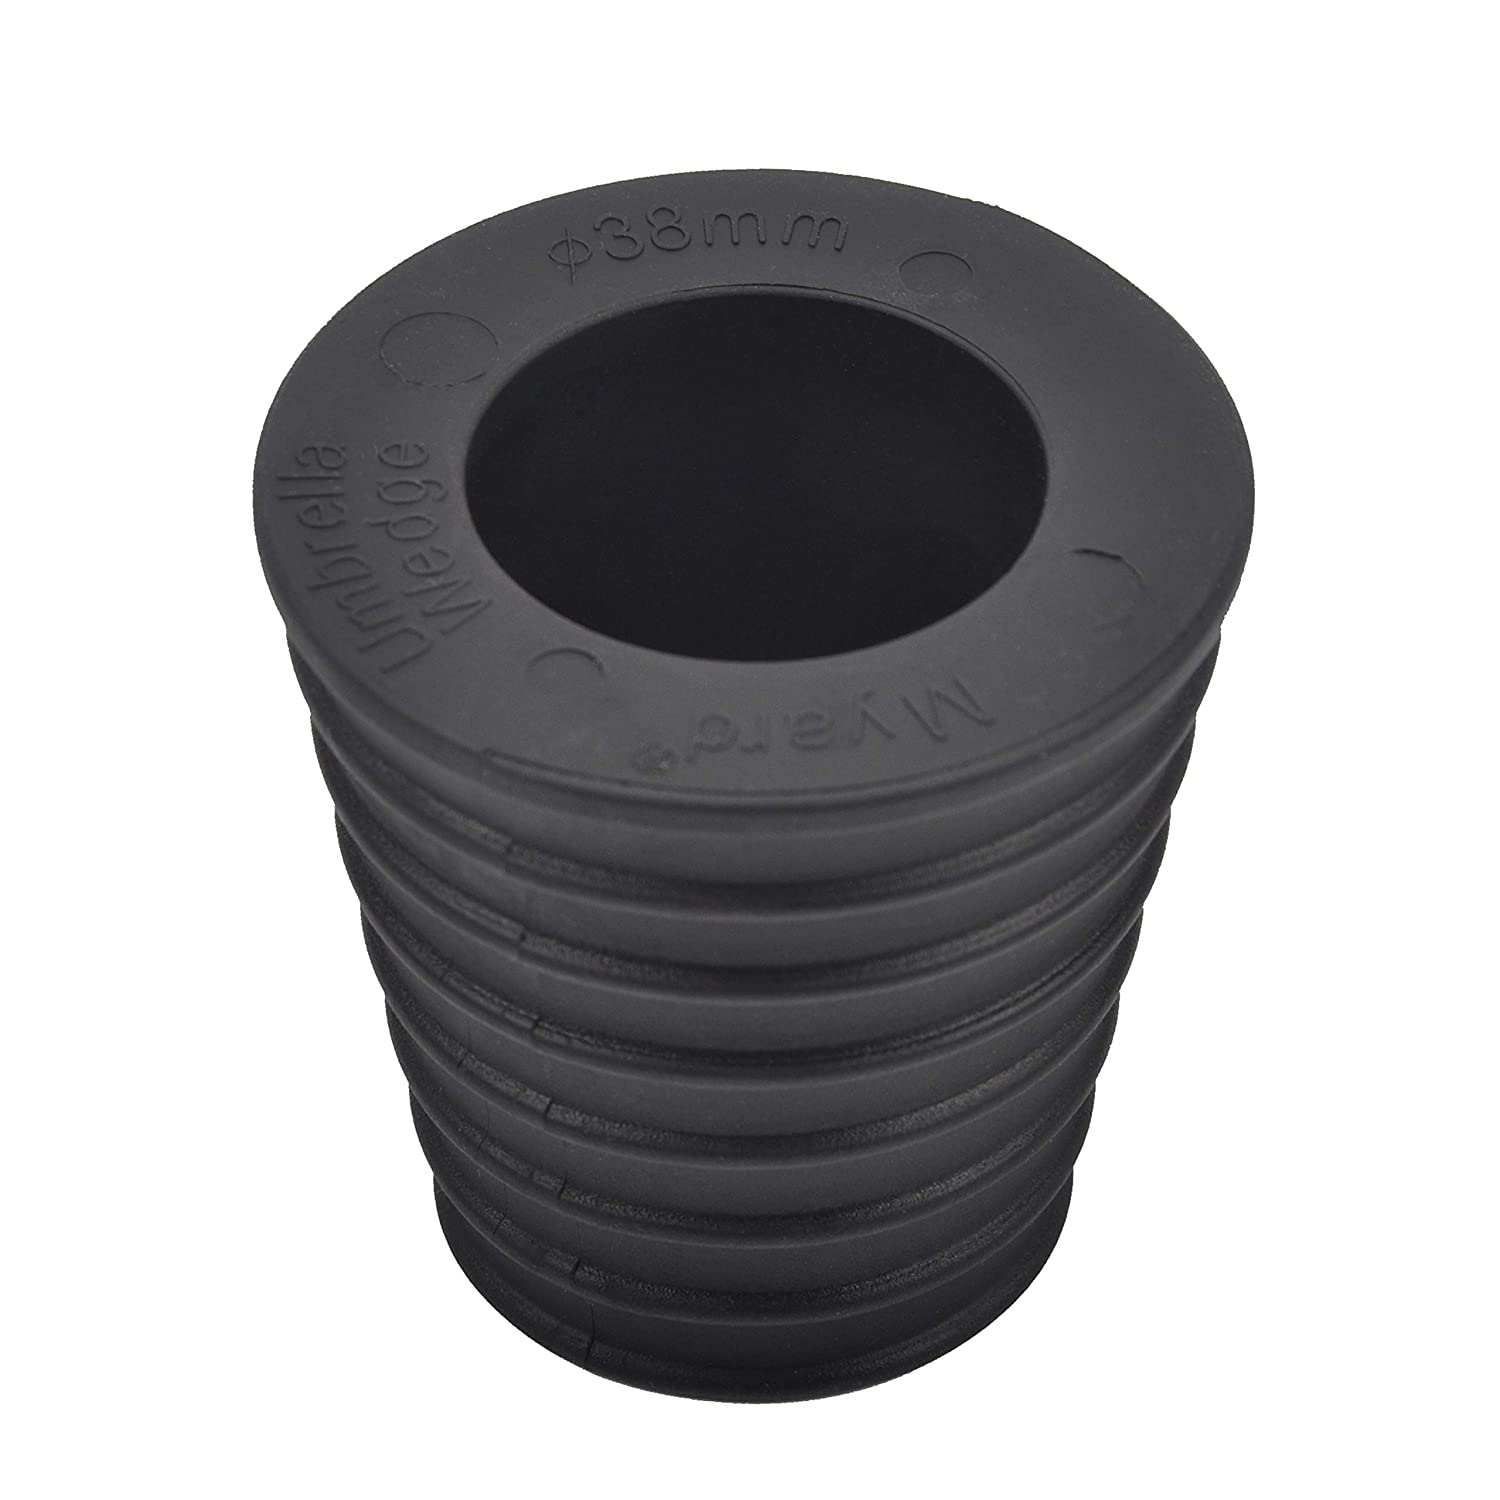 Myard MP UW38 Umbrella Cone Wedge Spacer fits Patio Table Hole Opening or Base 2 to 2.5 Inch, Umbrella Pole Diameter 1 1 2 38mm, Black